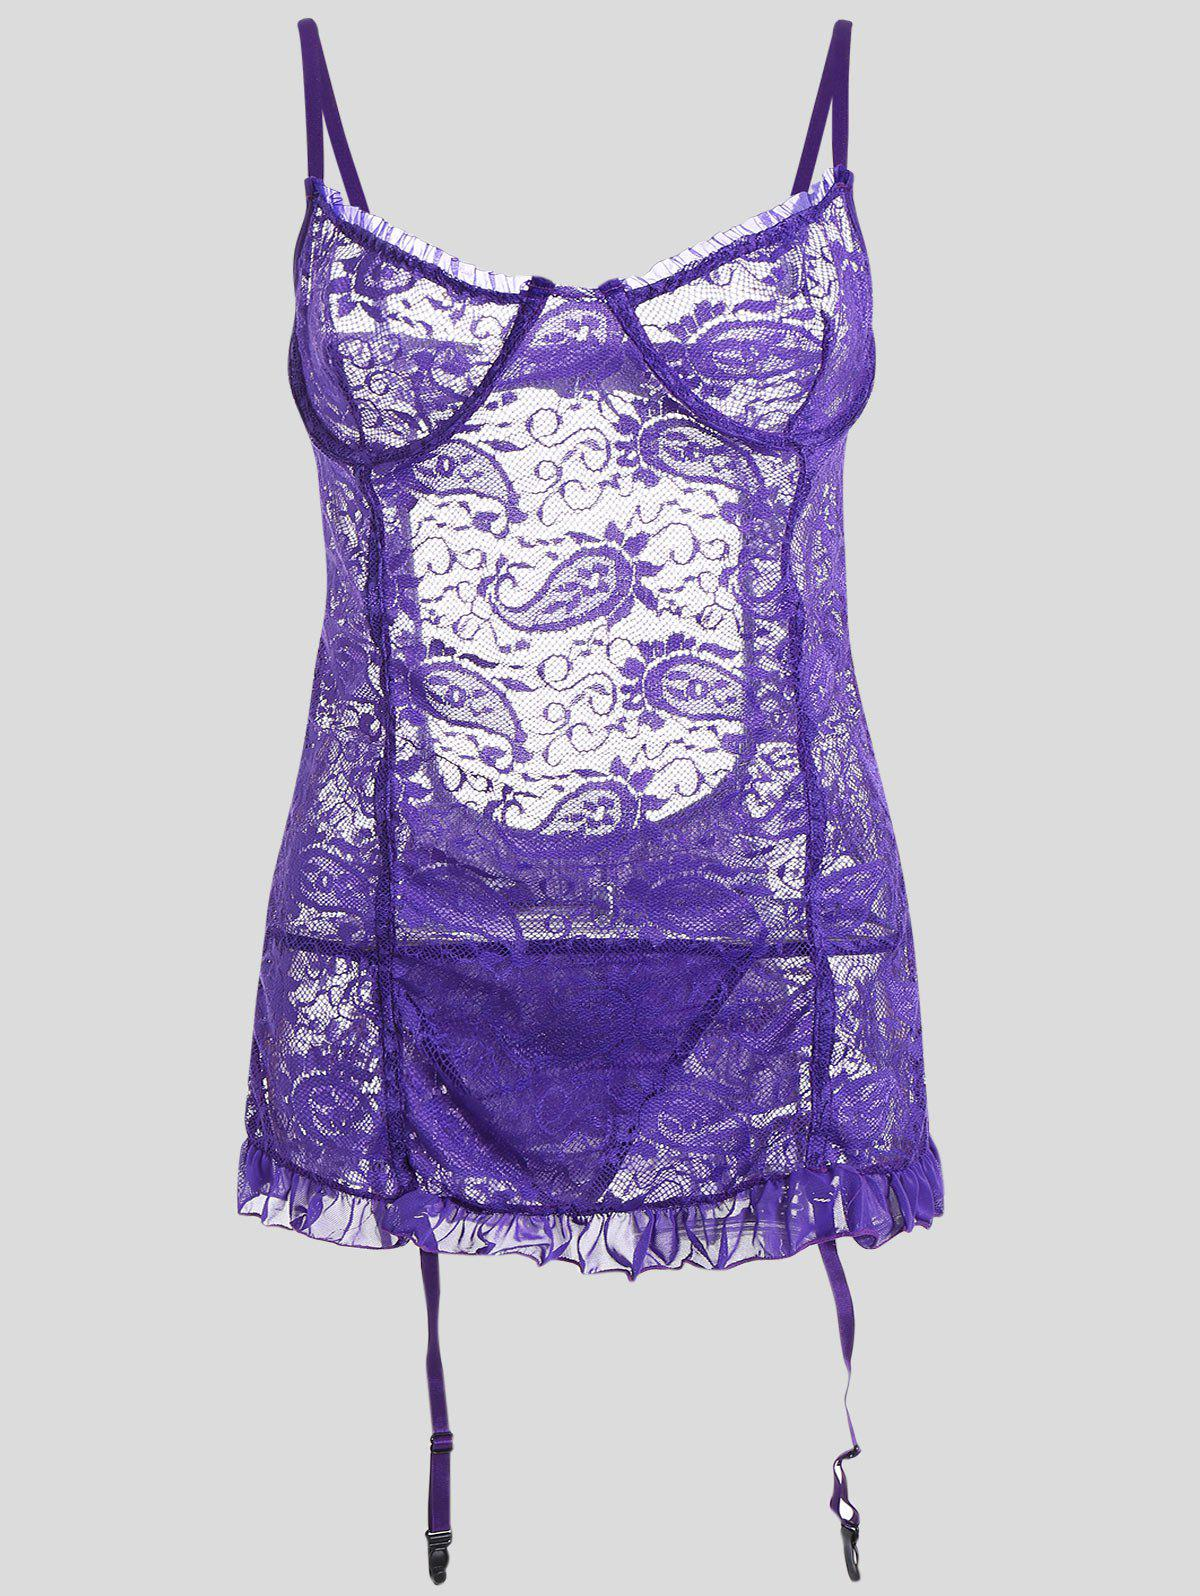 Lace Sheer Plus Size Slip Babydoll - Violet Clair 5XL